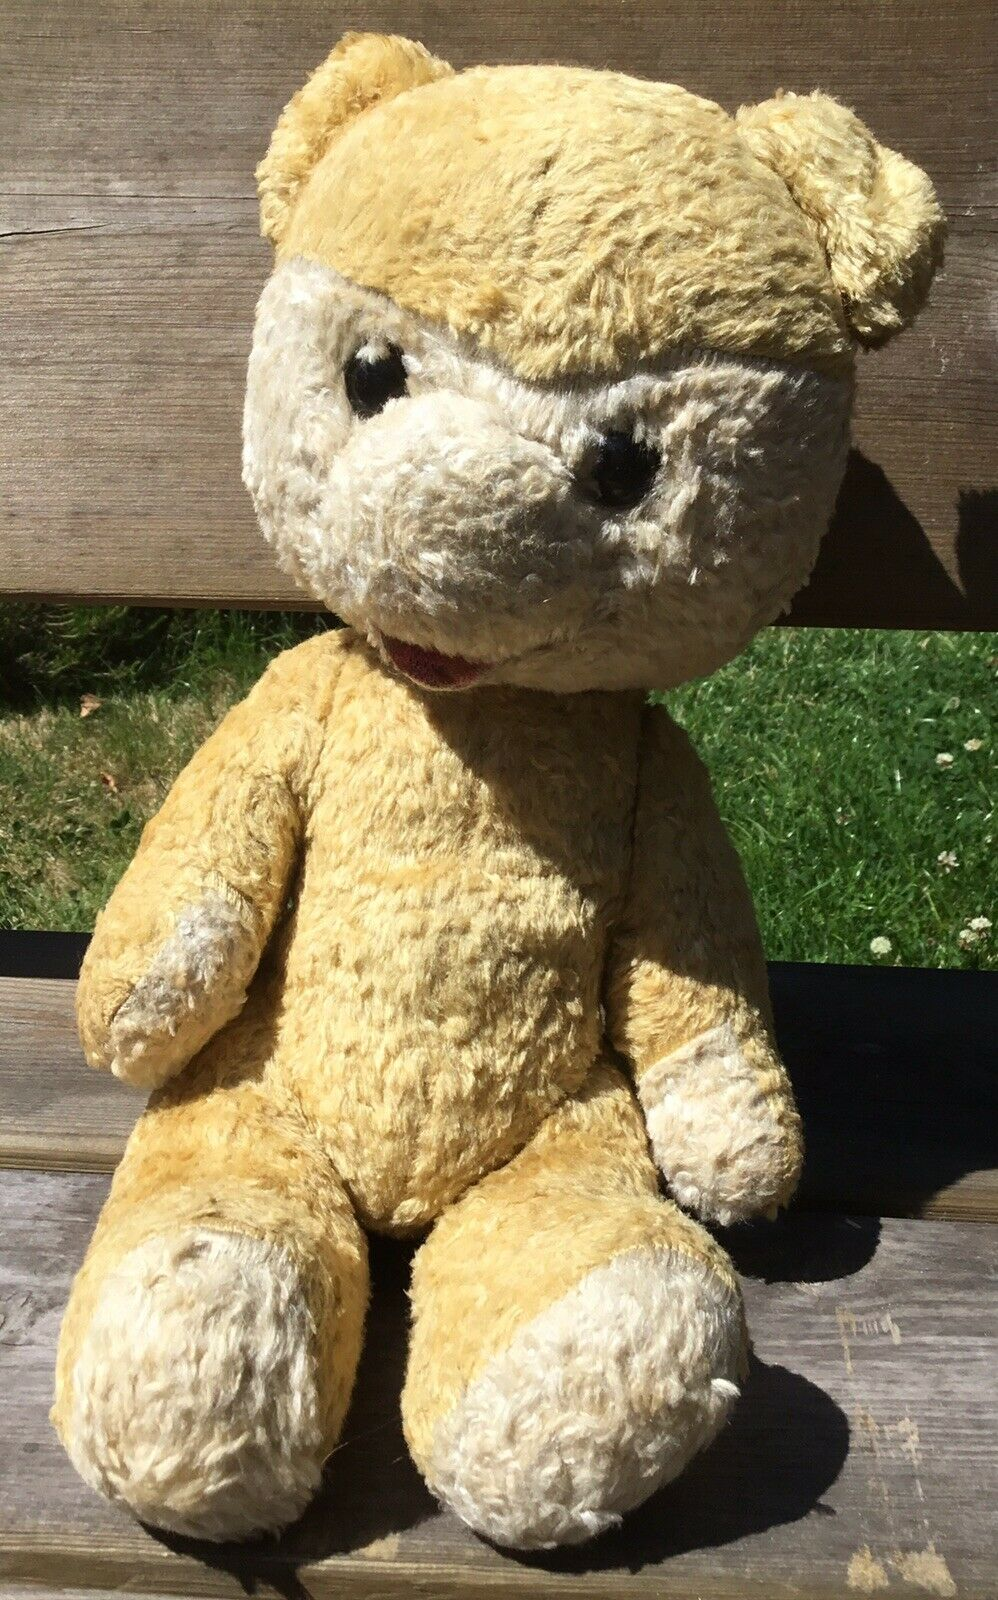 Old Vintage Unusual 1950s Straw Filled Jointed Playworn Teddy Bear 17""